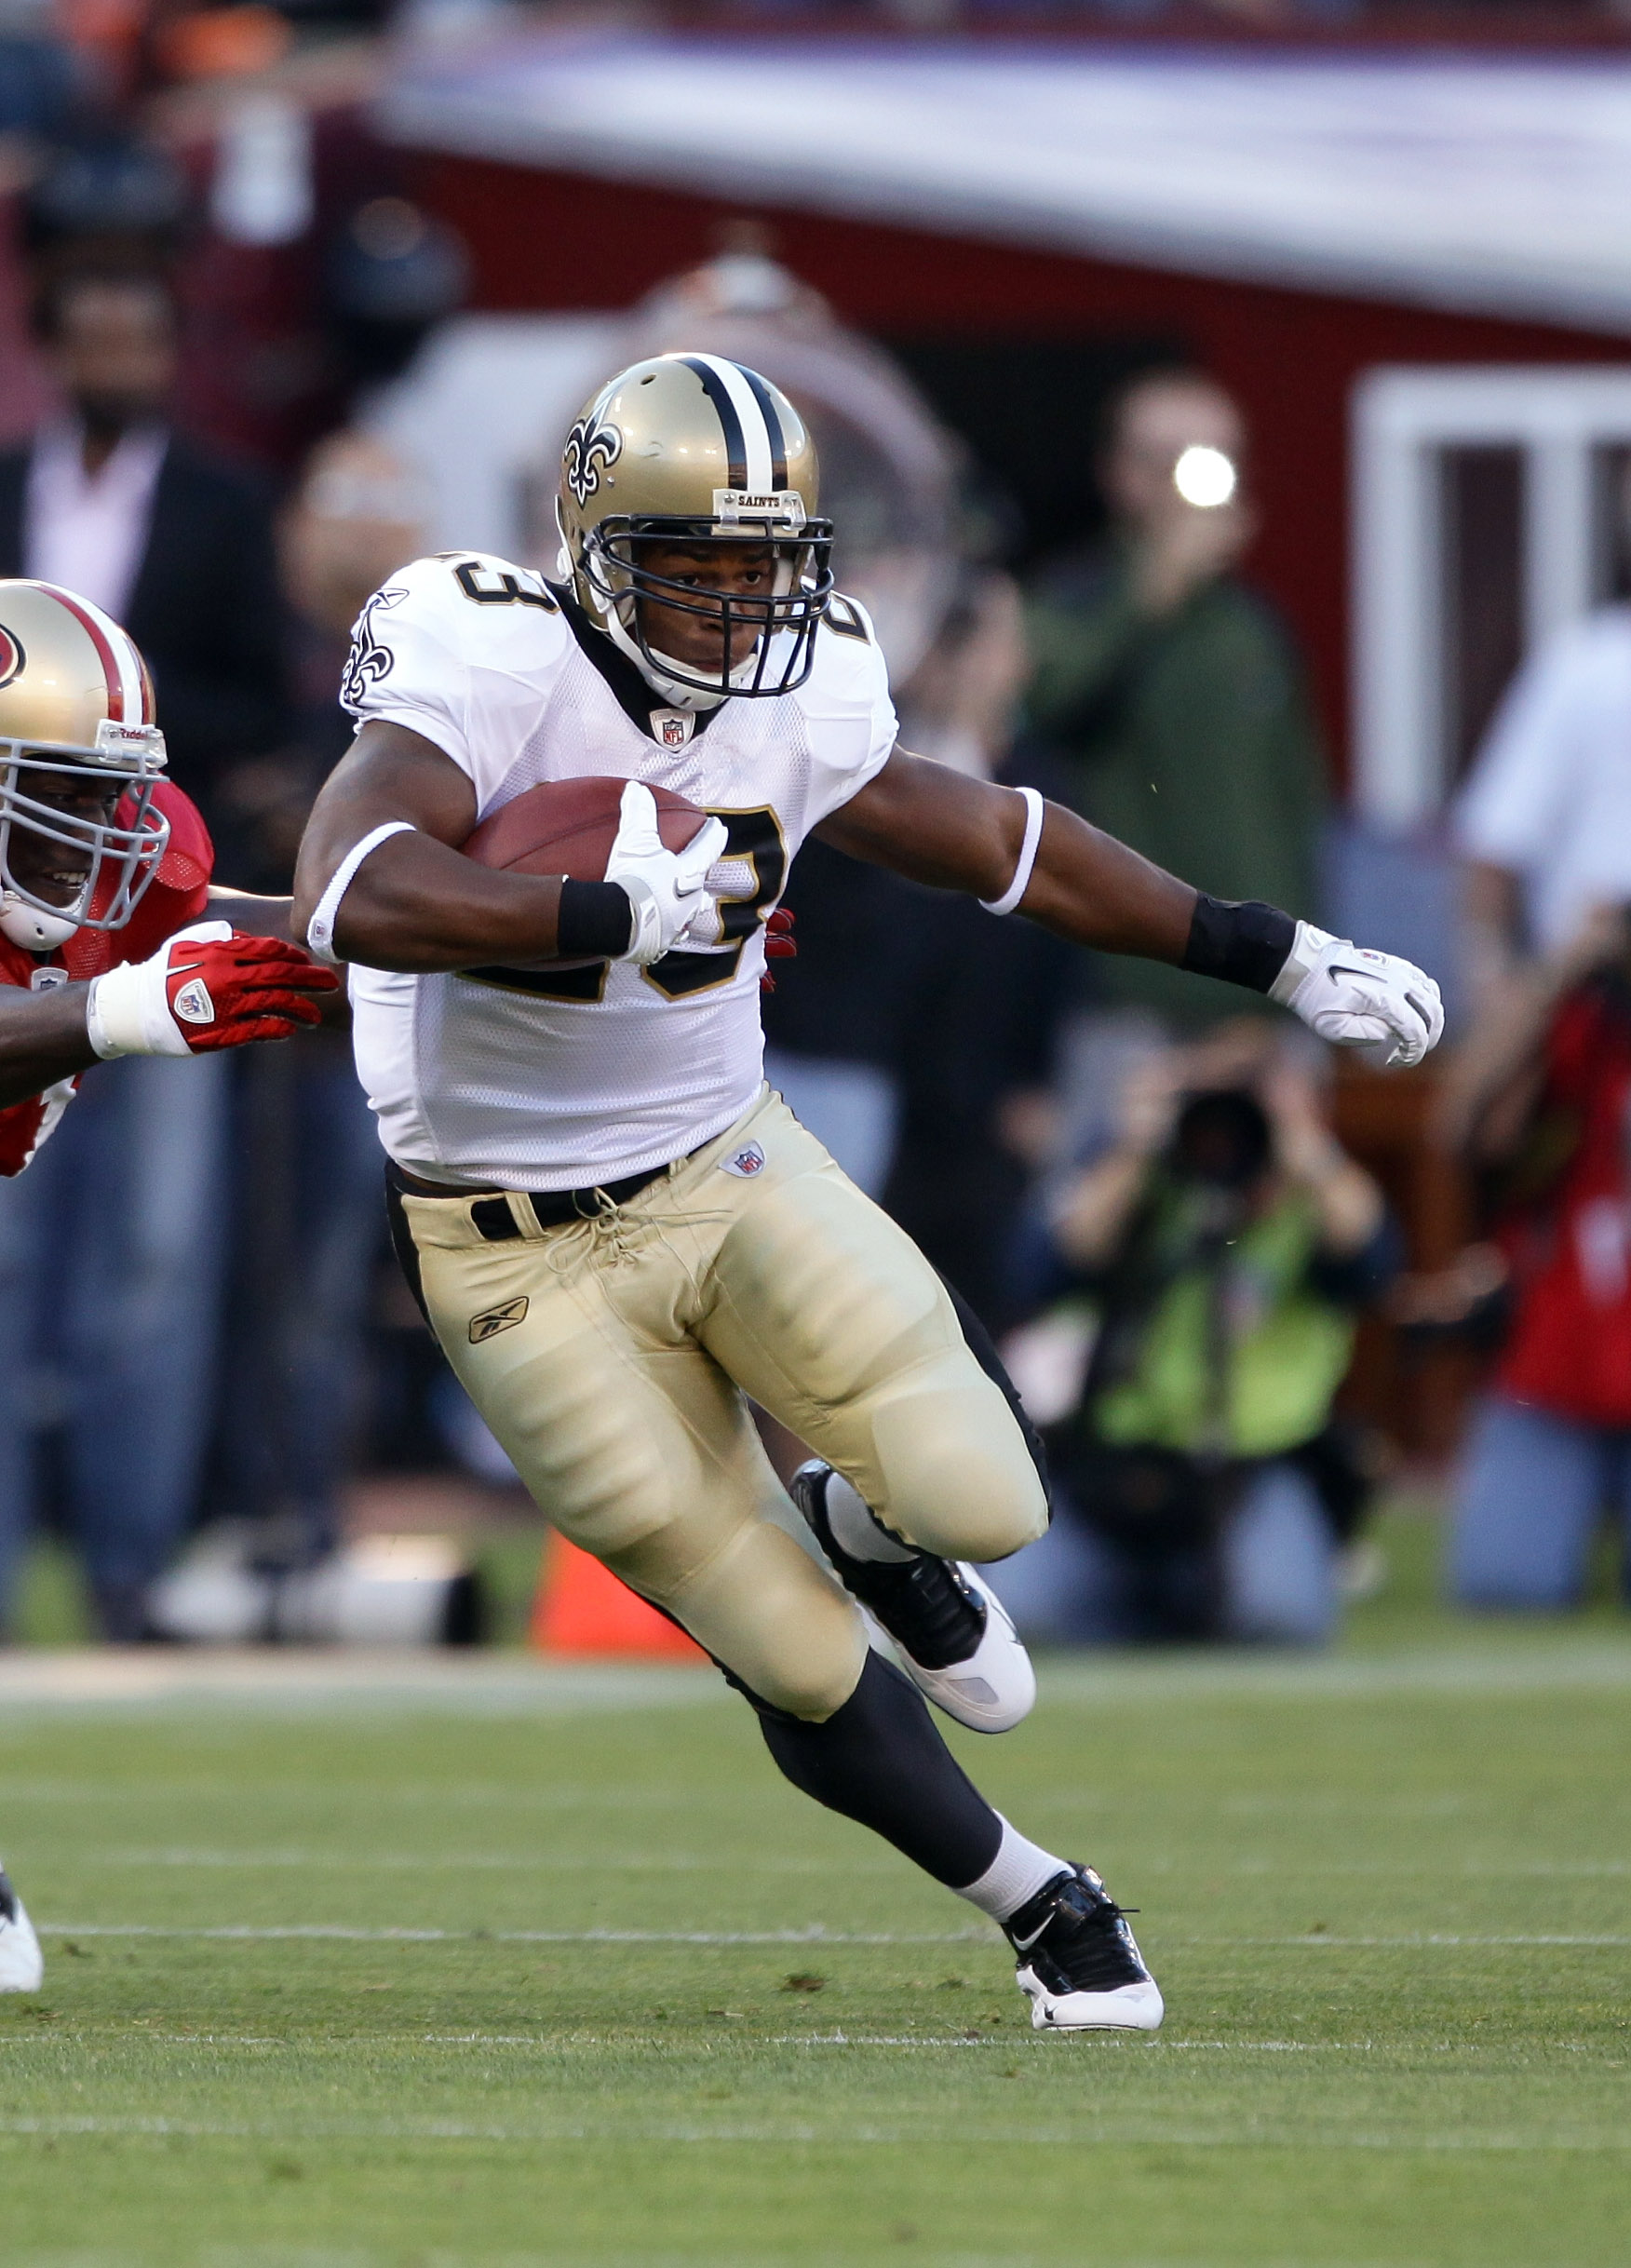 SAN FRANCISCO - SEPTEMBER 20:  Pierre Thomas #23 of the New Orleans Saints in action during their game against the San Francisco 49ers at Candlestick Park on September 20, 2010 in San Francisco, California.  (Photo by Ezra Shaw/Getty Images)